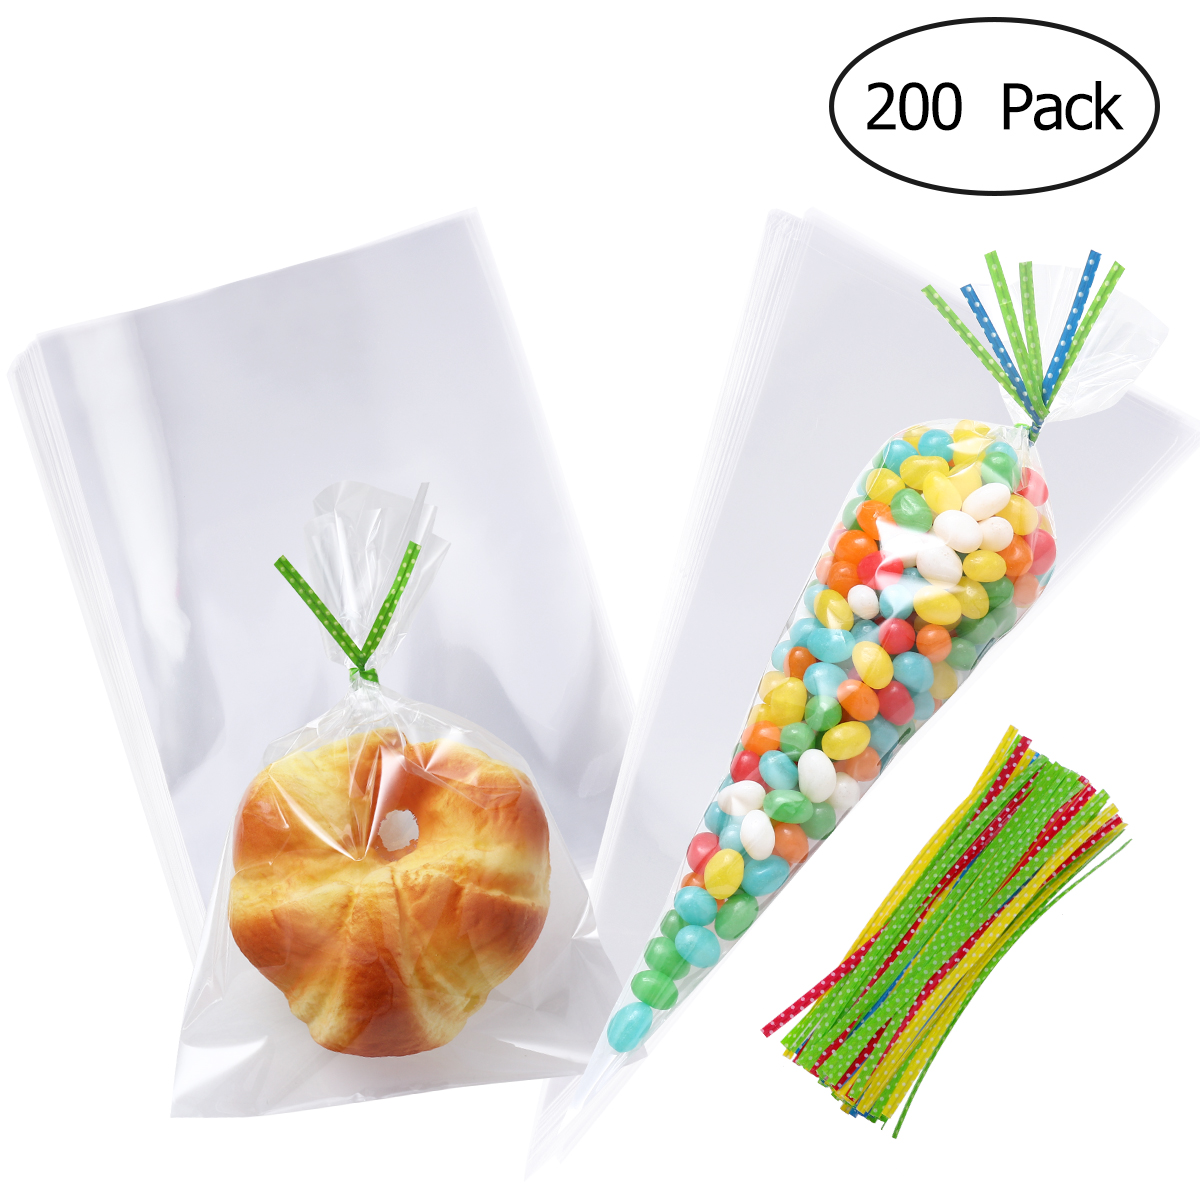 200pcs Clear Cellophane Bags Opp Plastic Bag Cookie Bakery Candy Biscuit Lollipop Treat Gift Bags With 200pcs Ribbons For Party Kitchen,dining & Bar